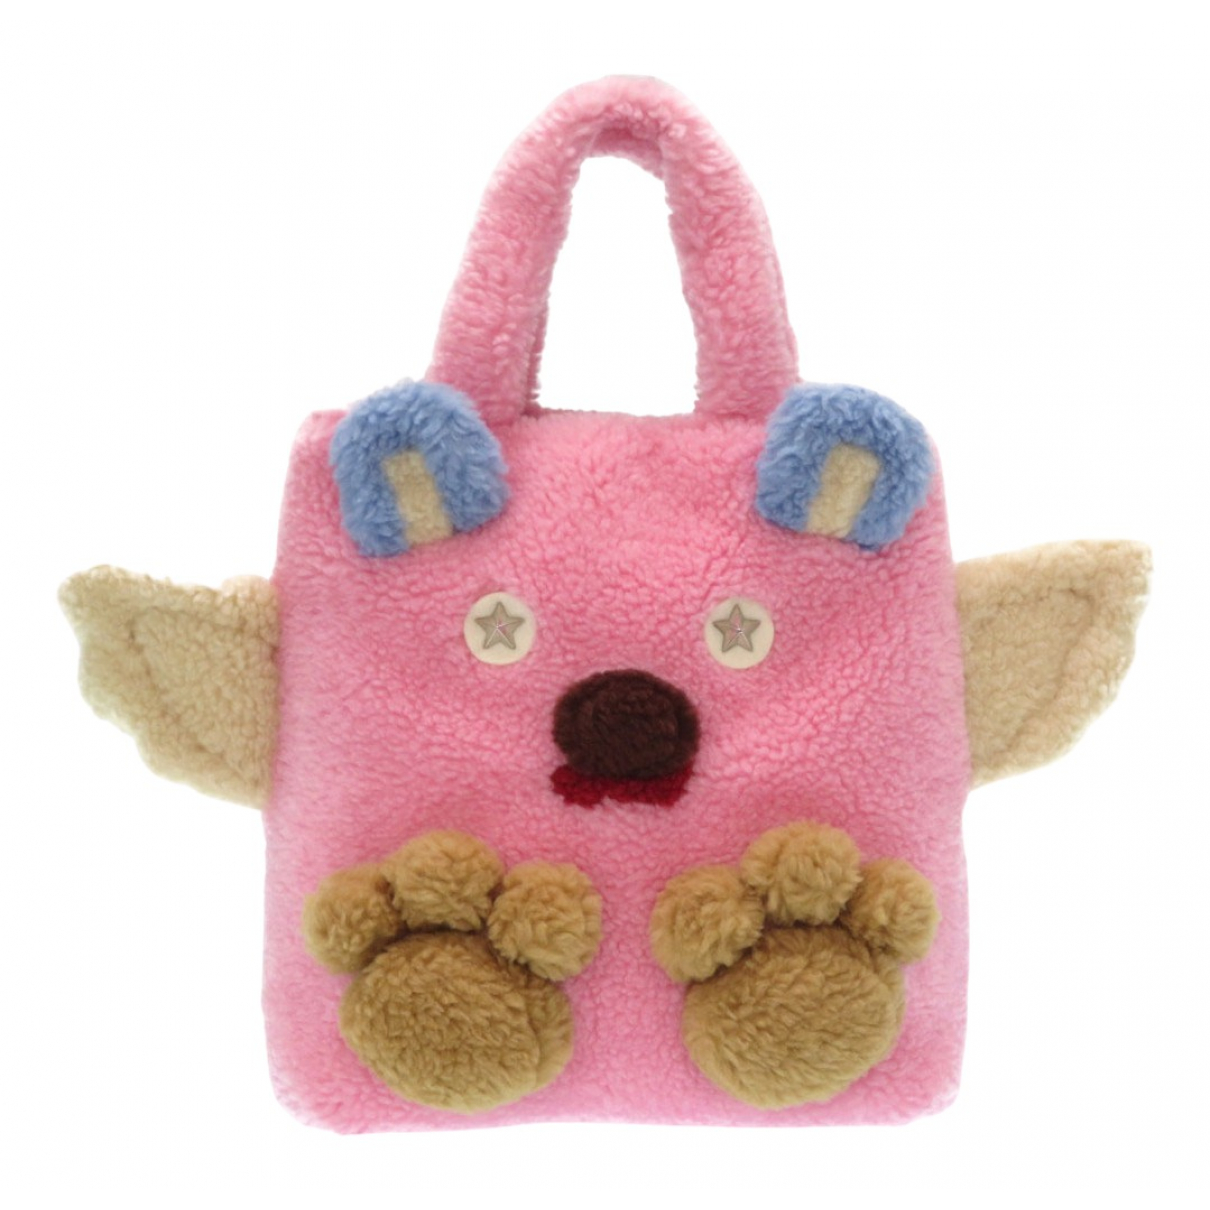 Gucci \N Pink Cotton bag & Pencil cases for Kids \N